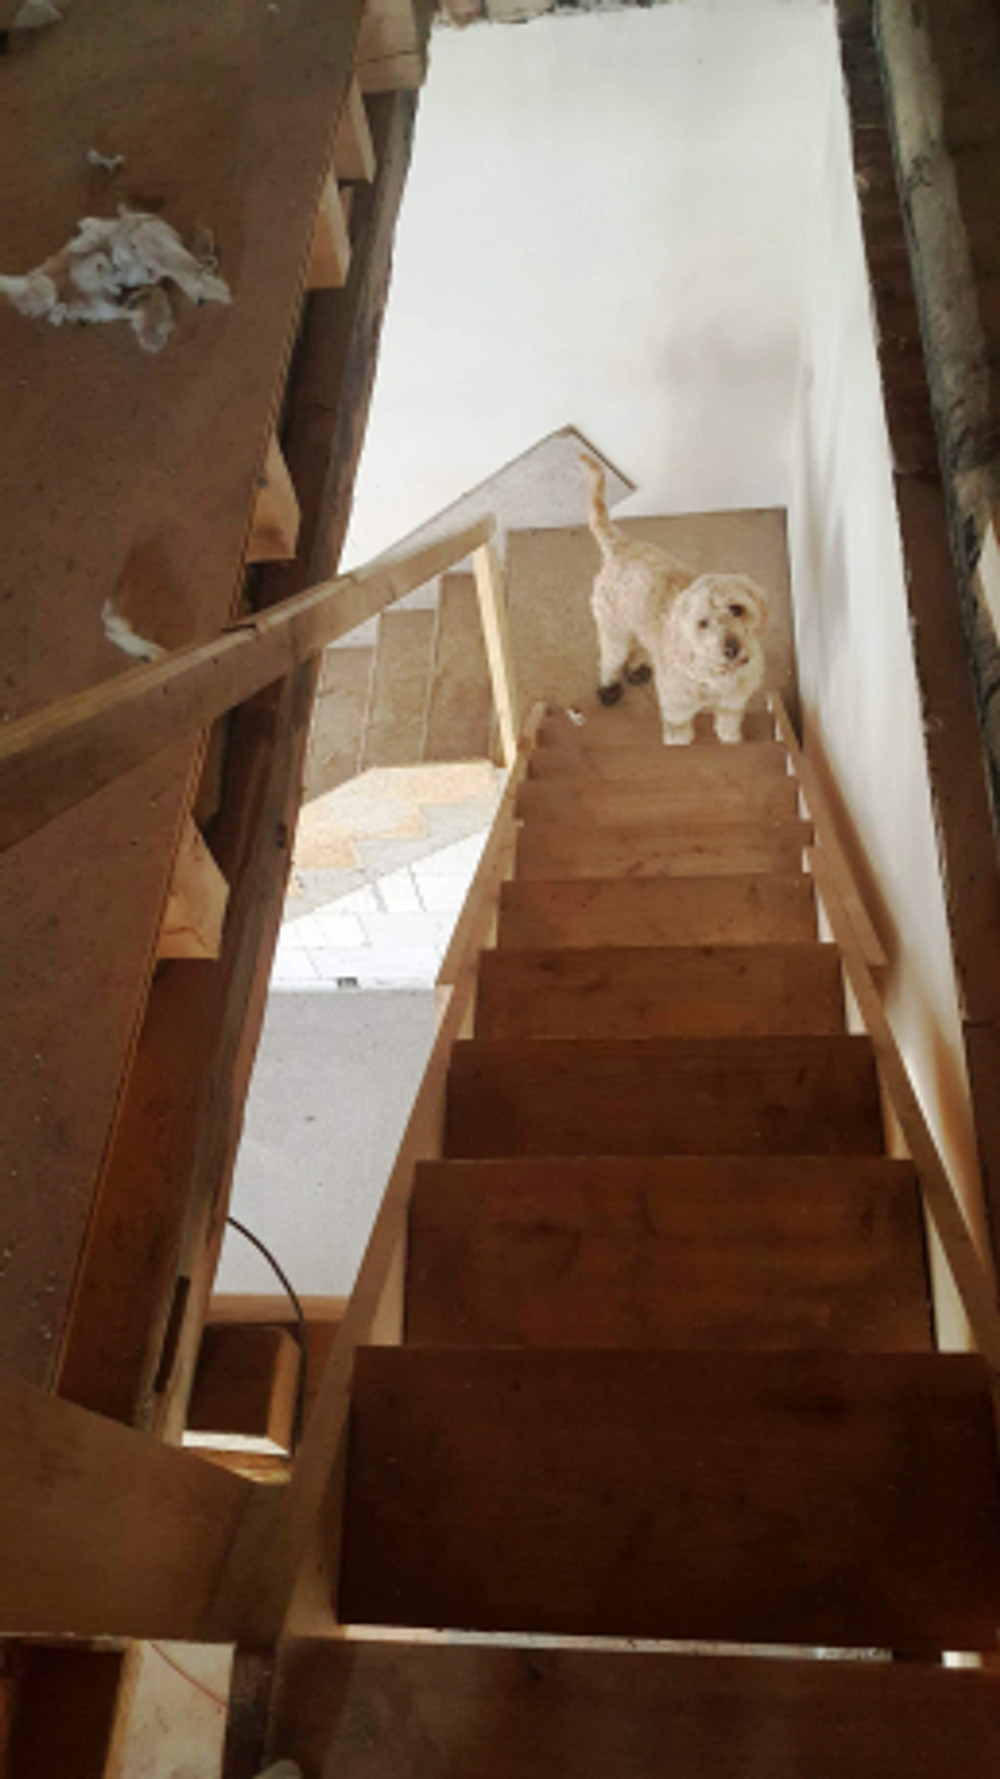 Fido on the stairs